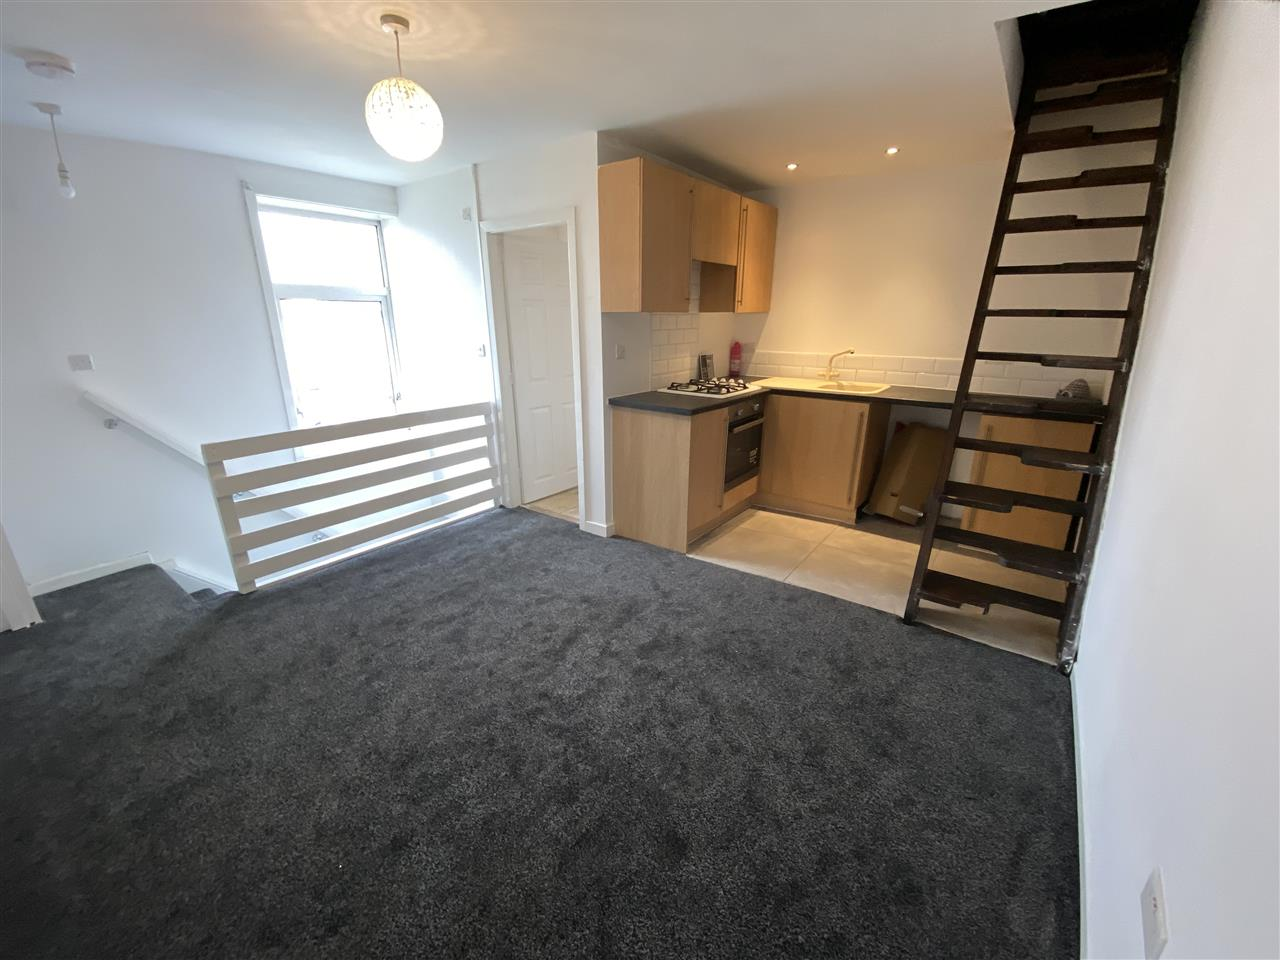 1 bed apartment to rent in Sudell Road,, Darwen, BB3